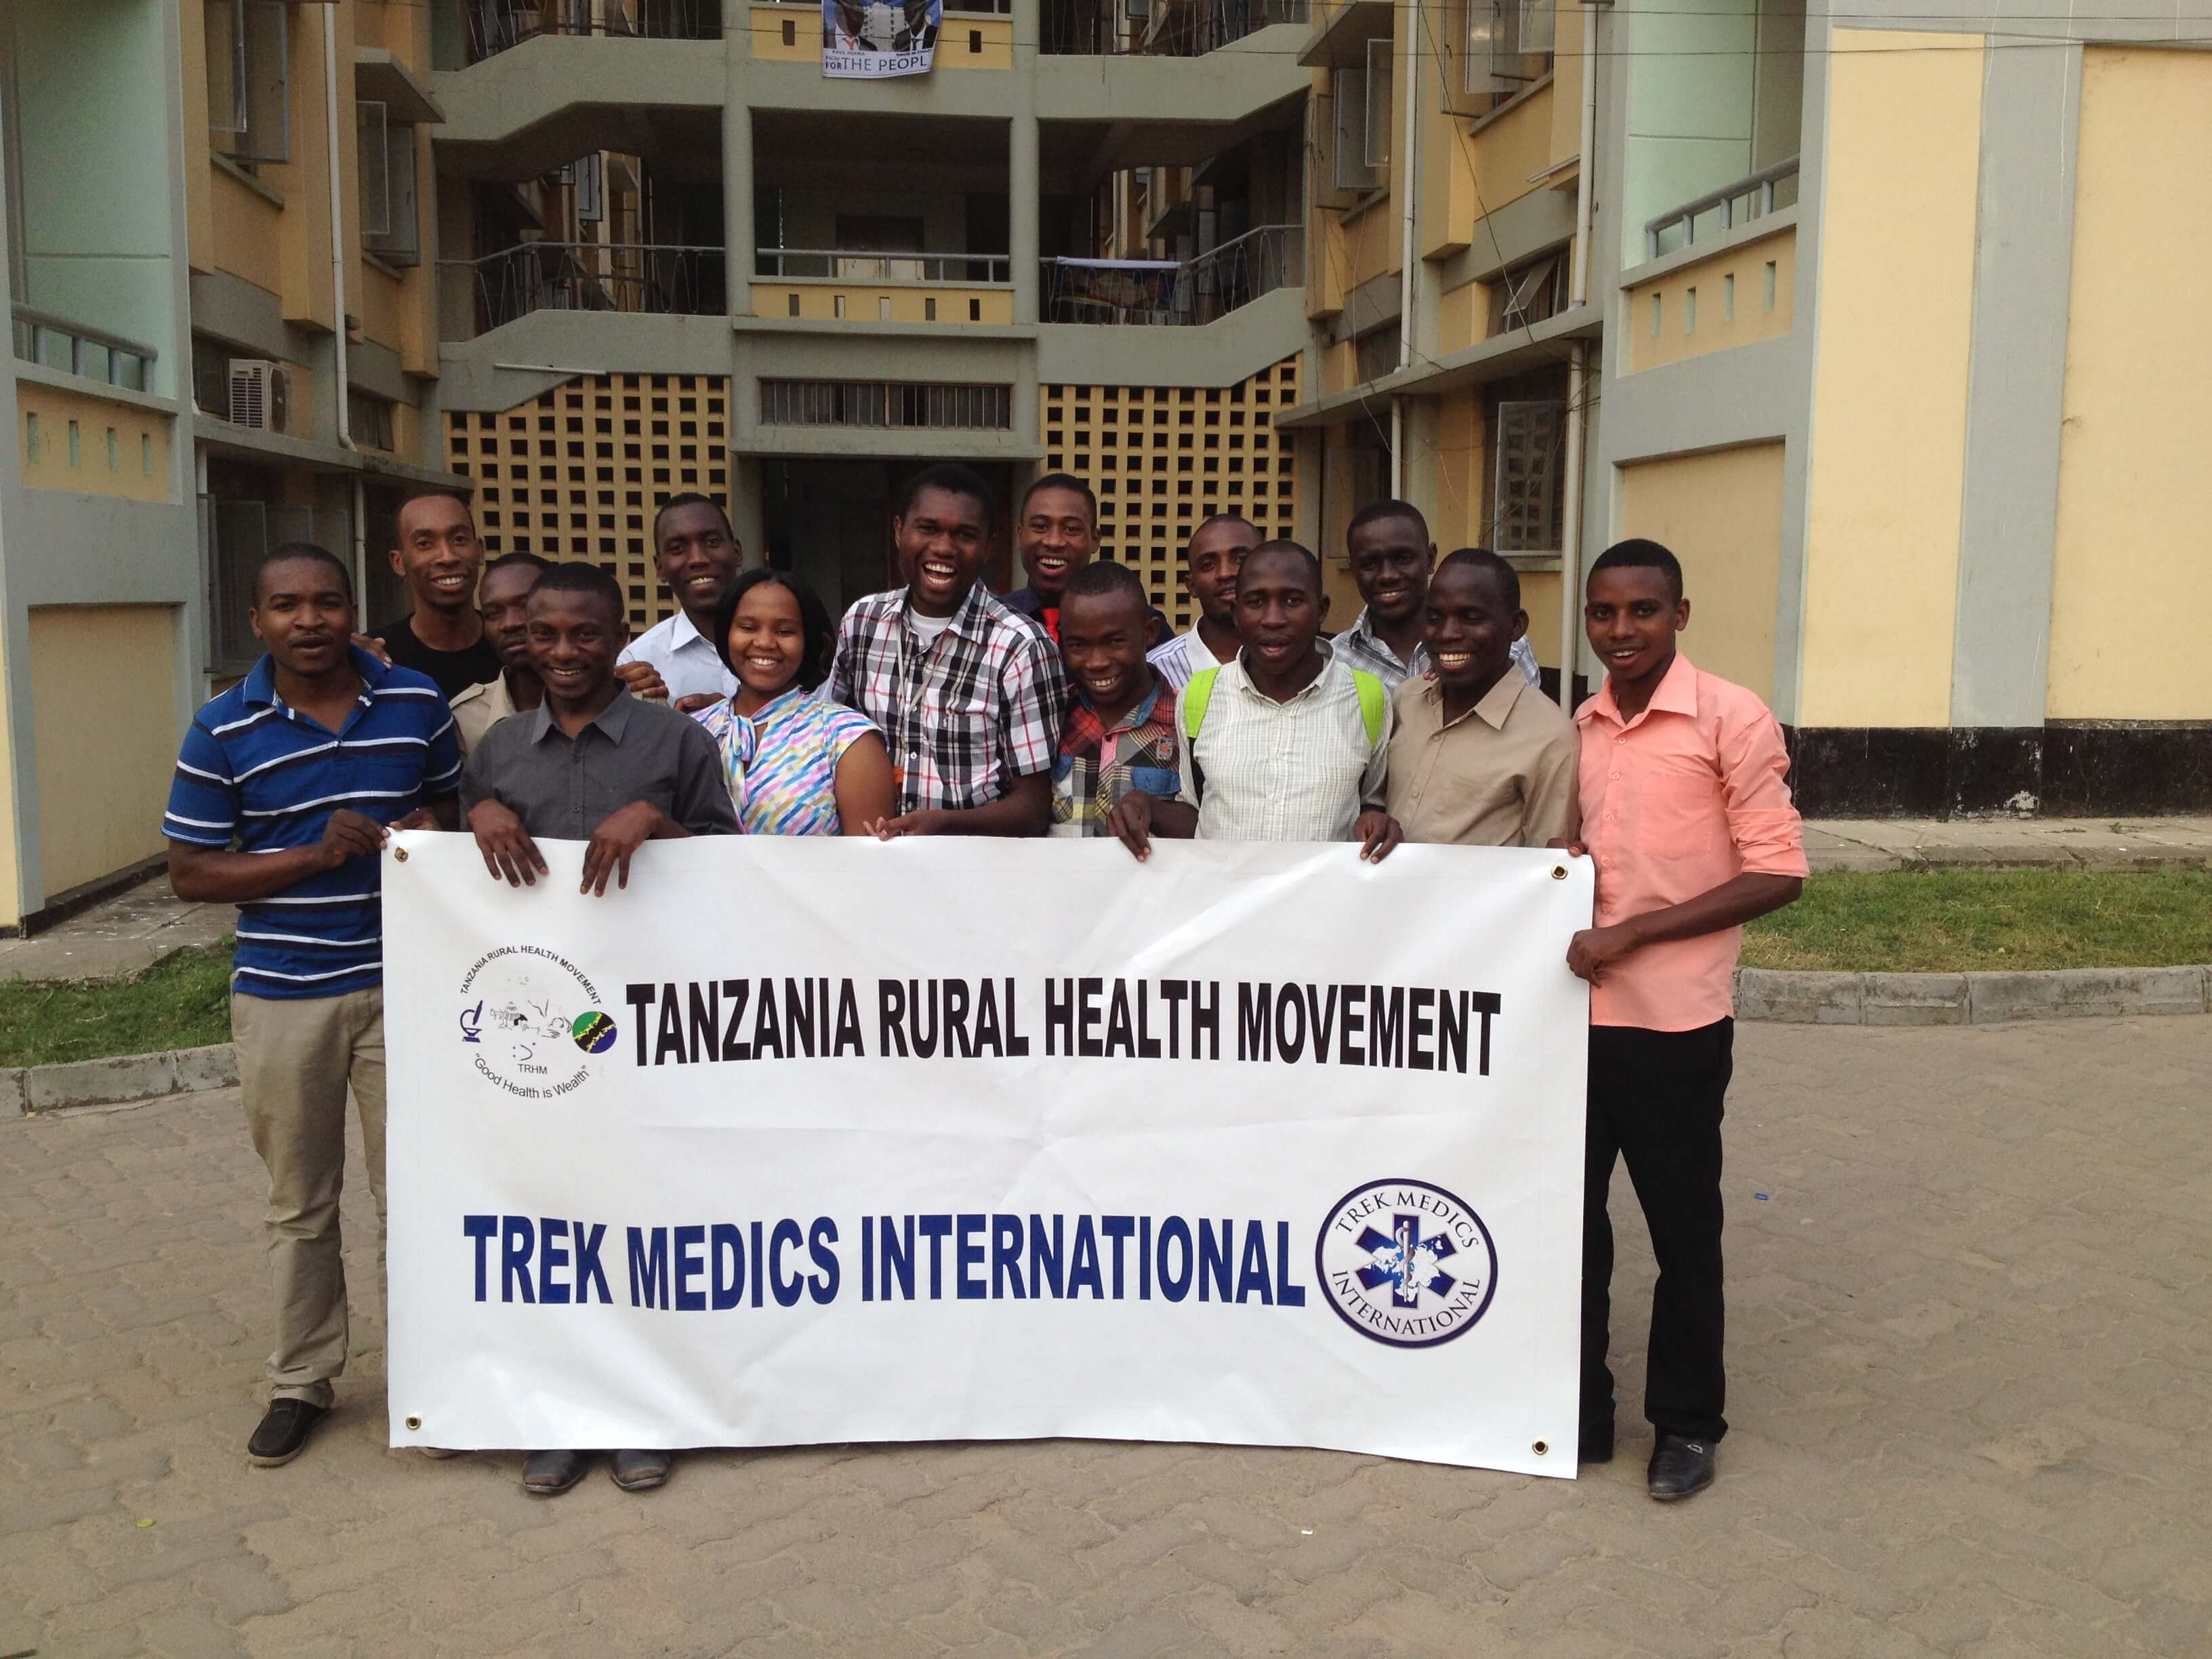 Trek Medics International and Tanzania Rural Health Movement